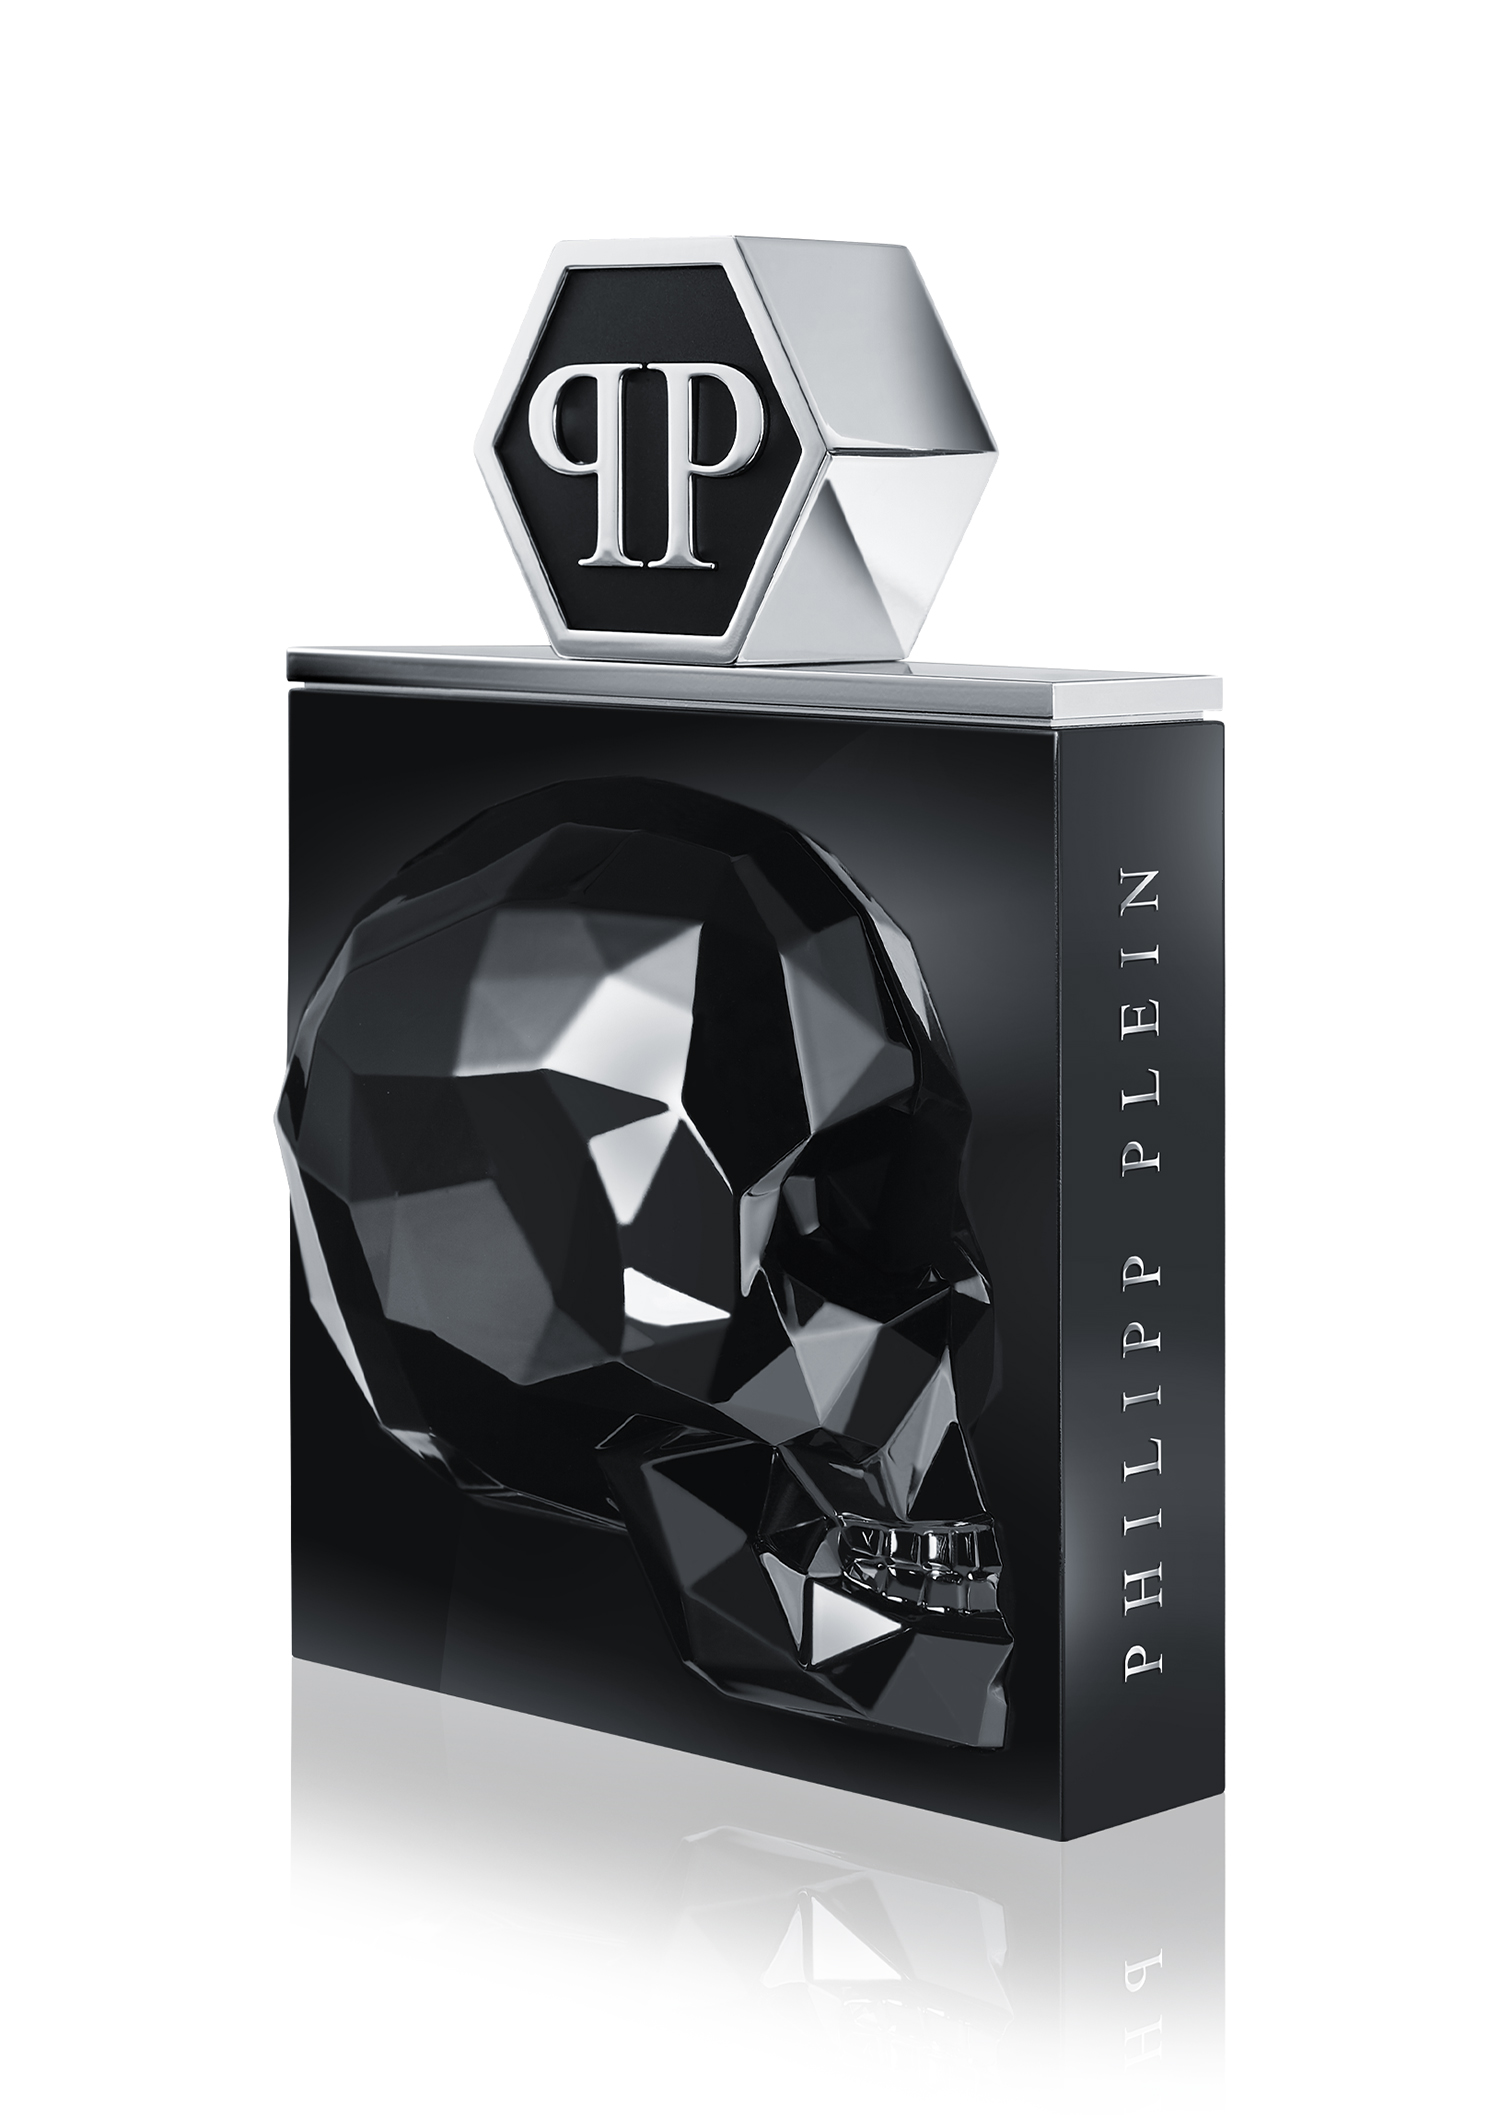 Philipp-Plein-The-$Kull-Box-Flacon-03.jpg